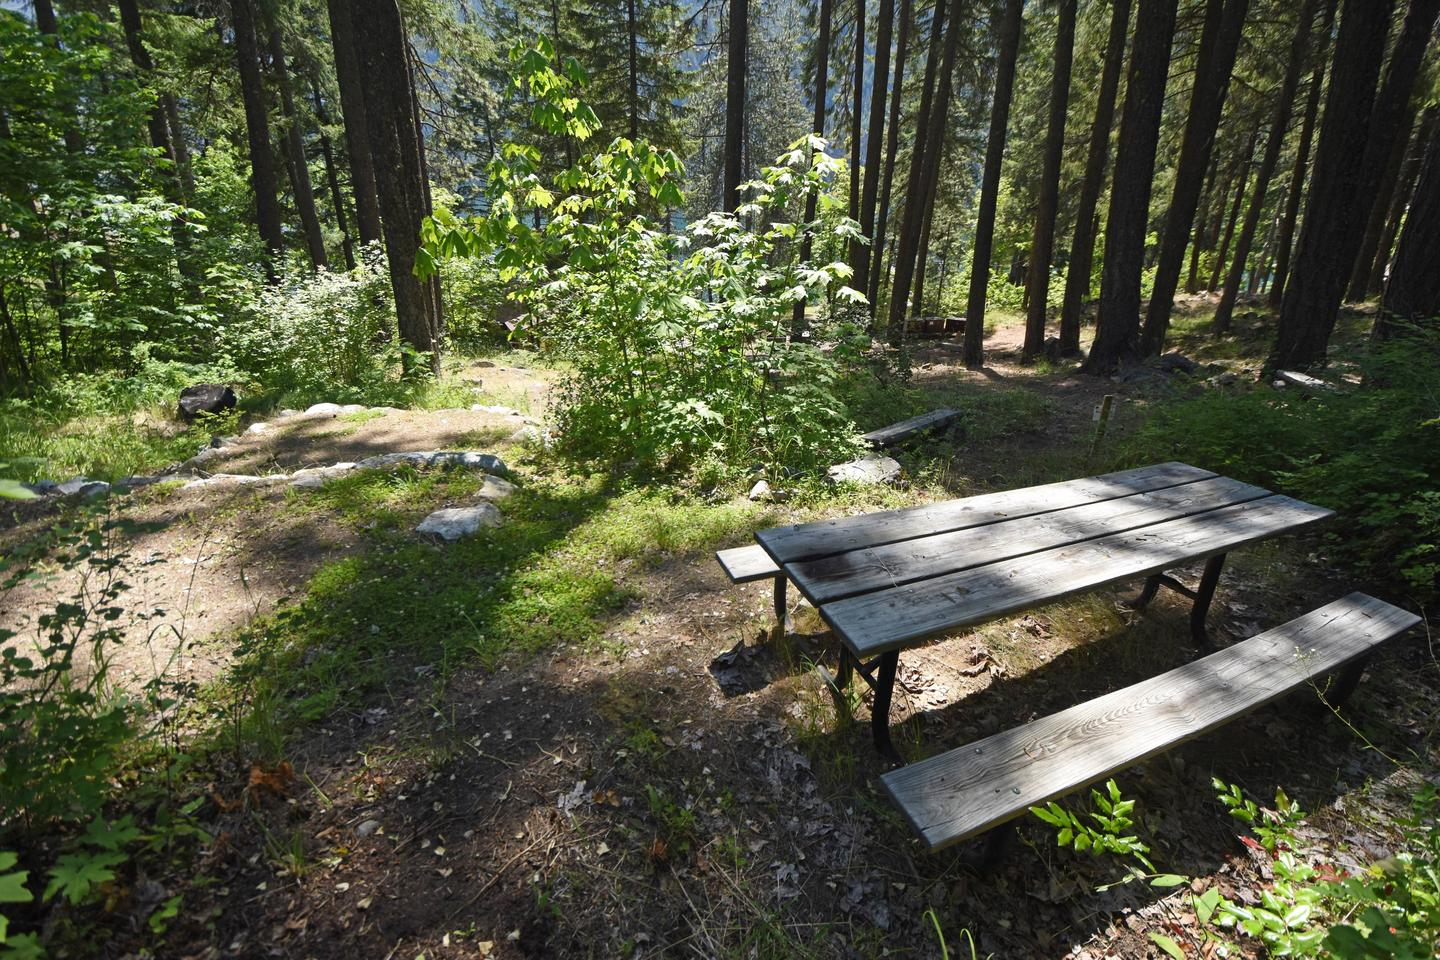 Lakeview campsite with picnic table in forestLakeview Site 2